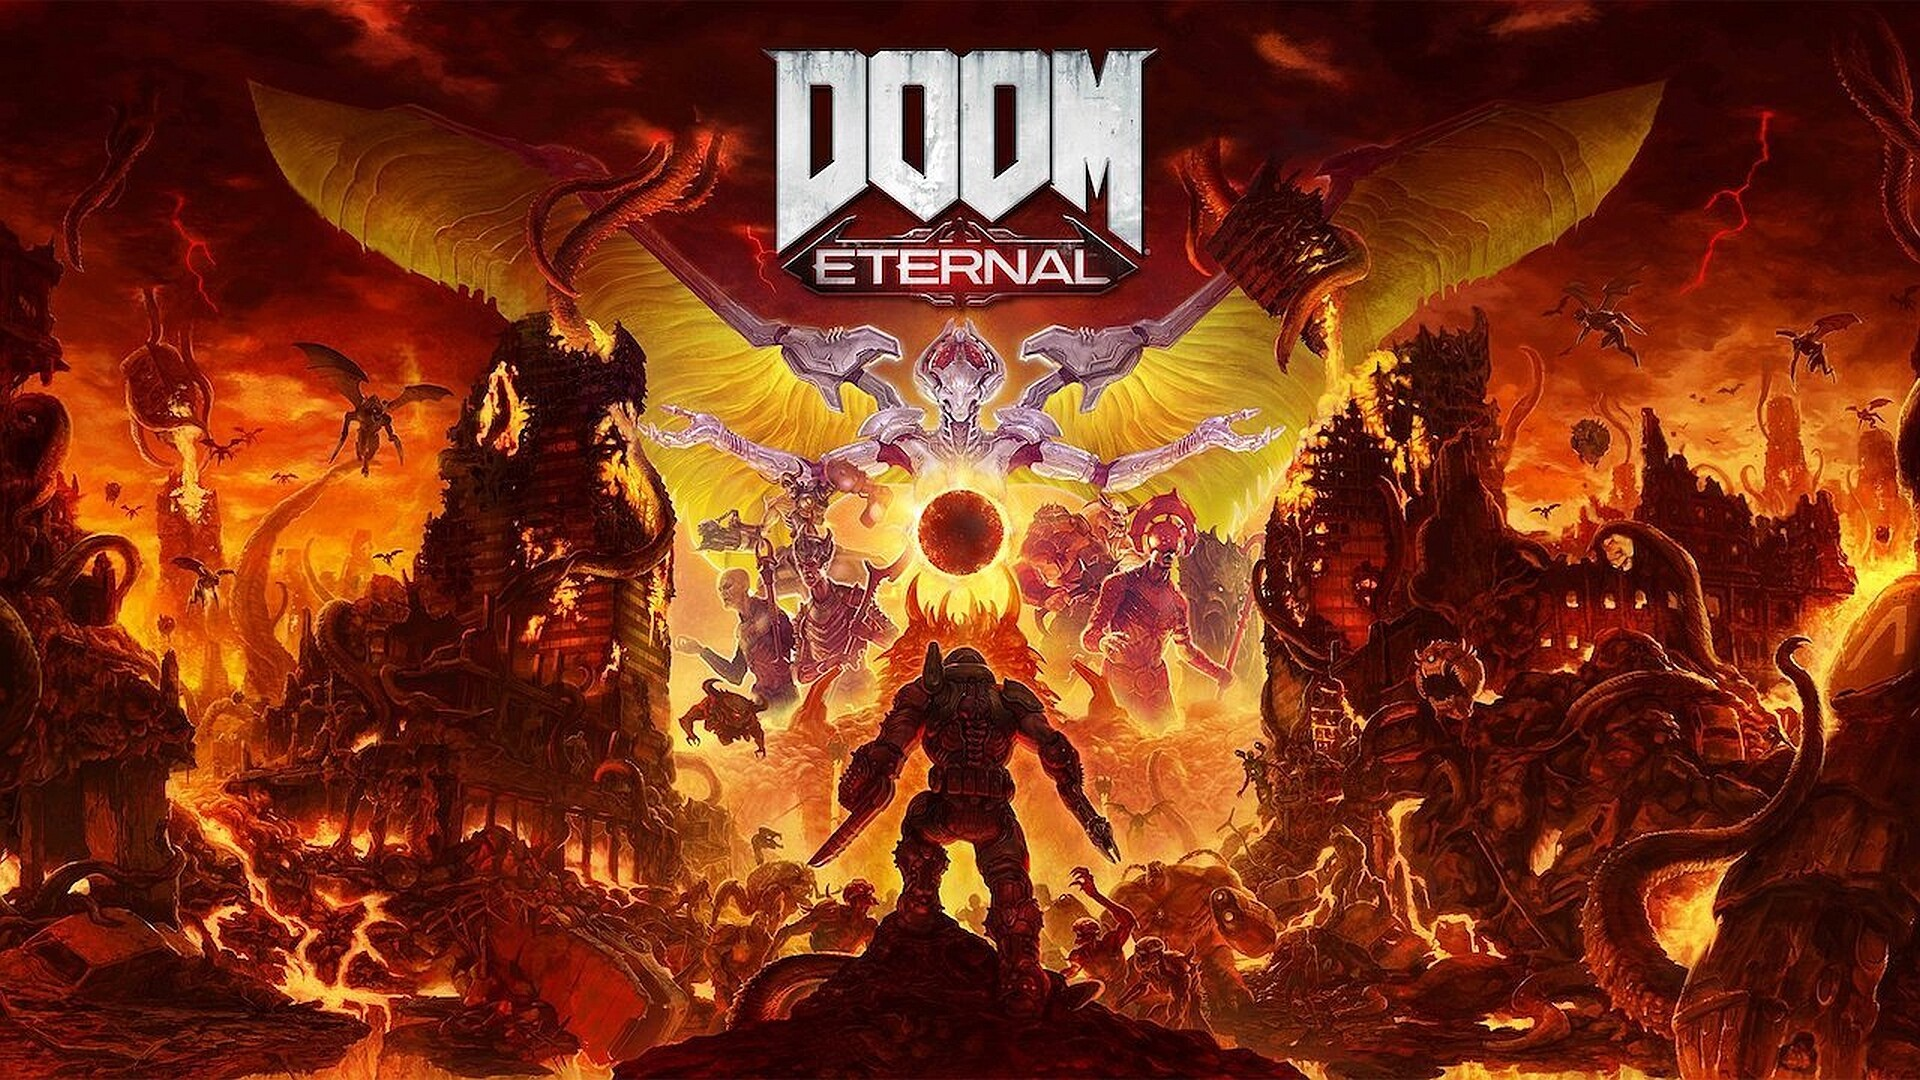 Here is the launch trailer for Doom Eternal